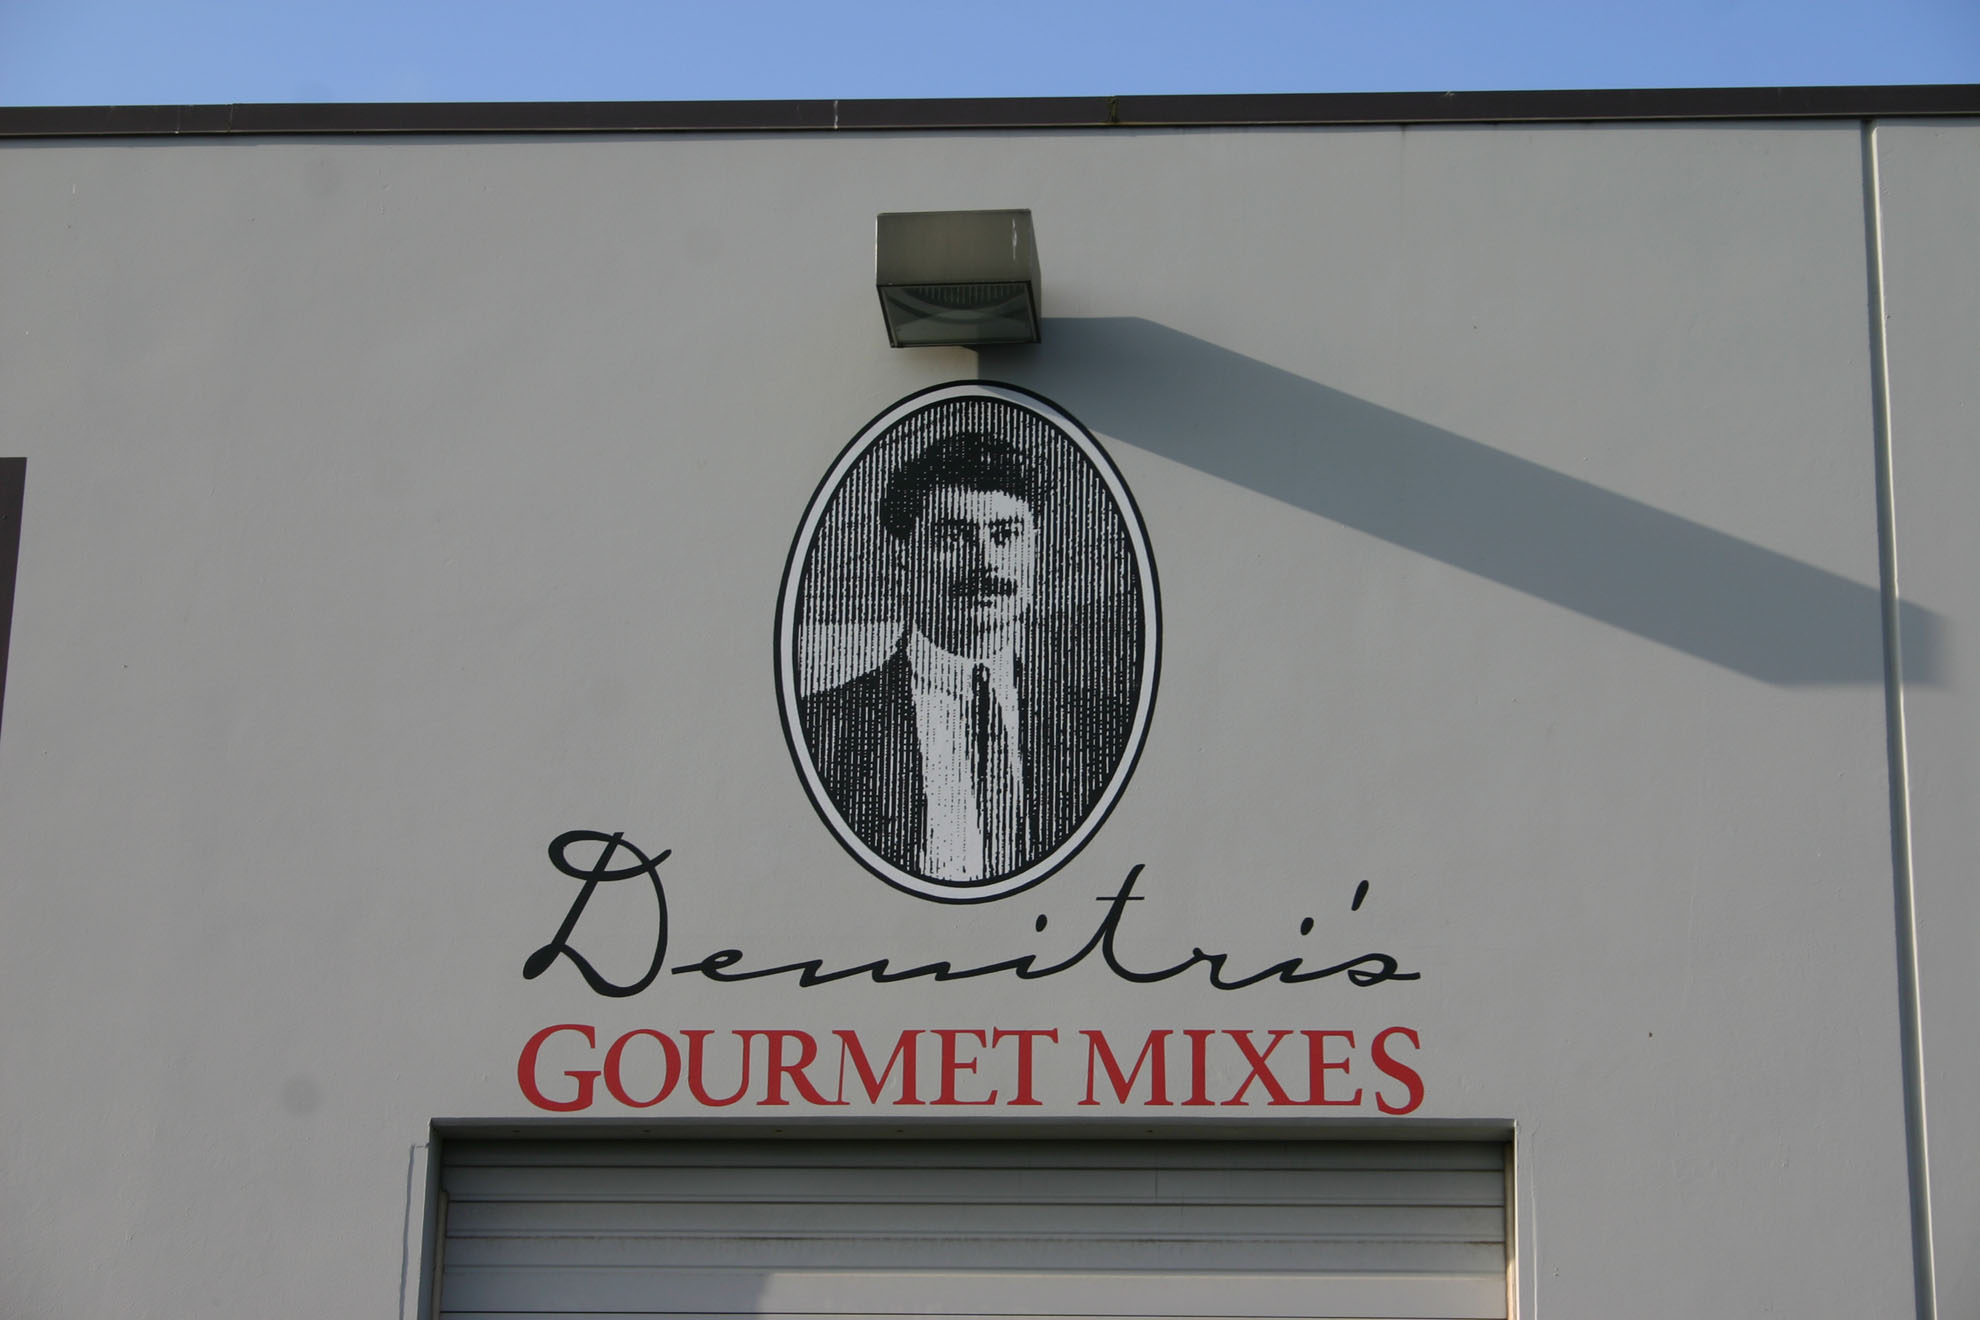 Demitri's Gourmet Mixes, Seattle